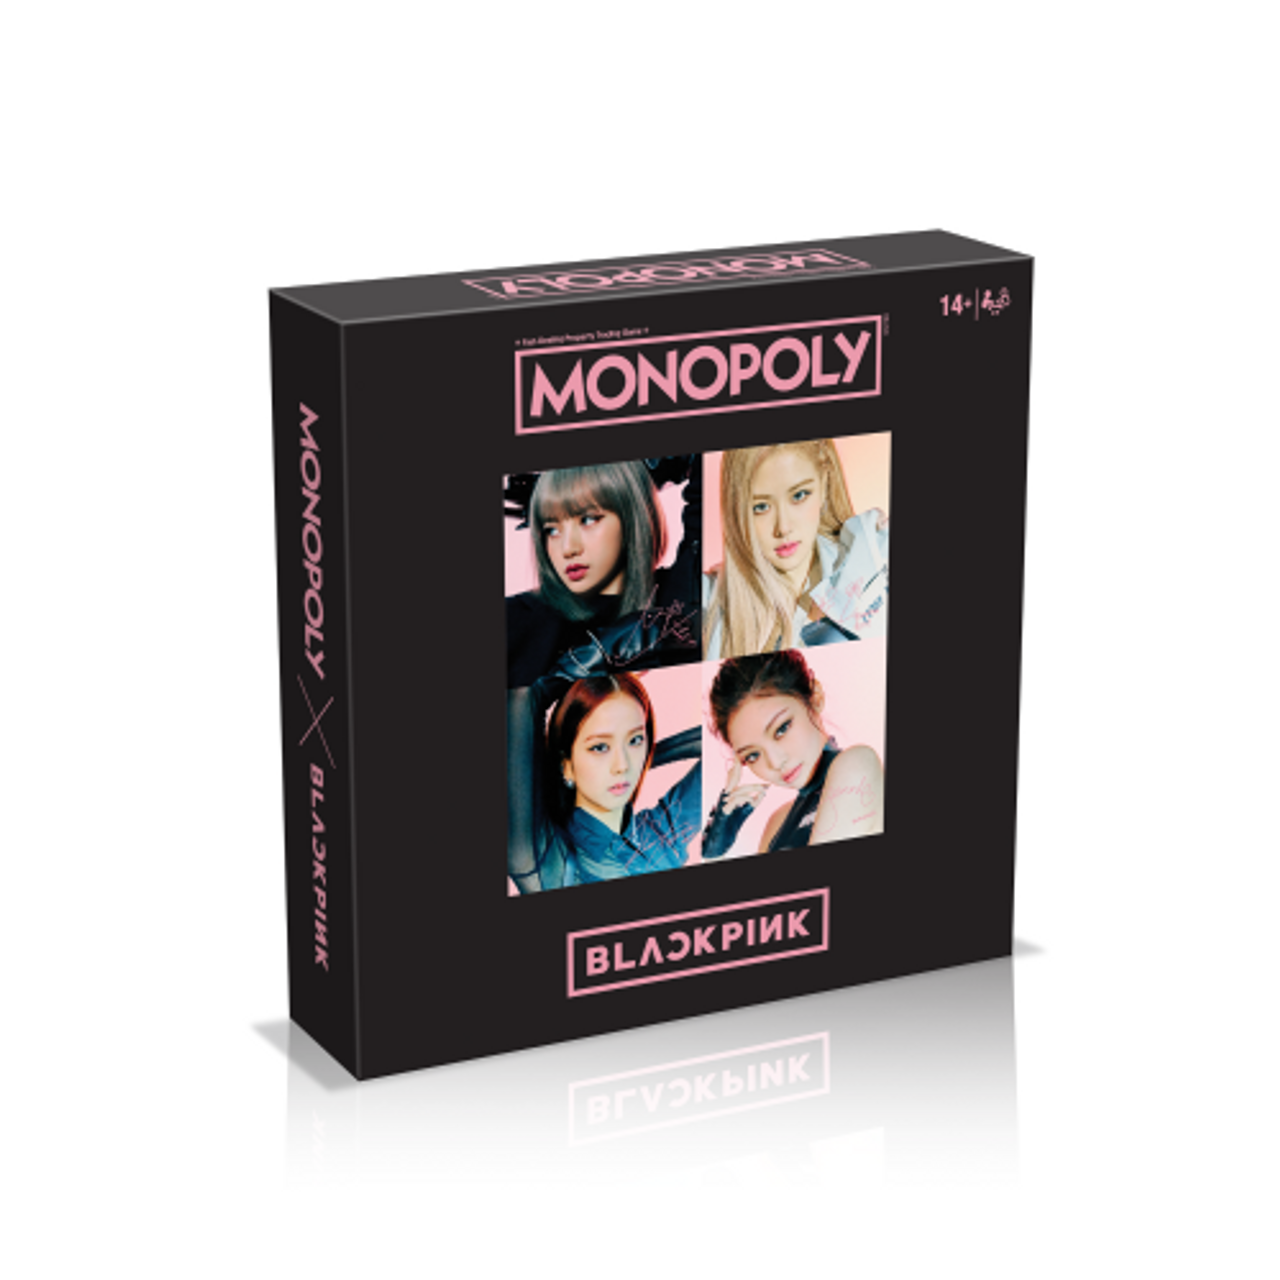 BLACKPINK - IN YOUR AREA MONOPOLY